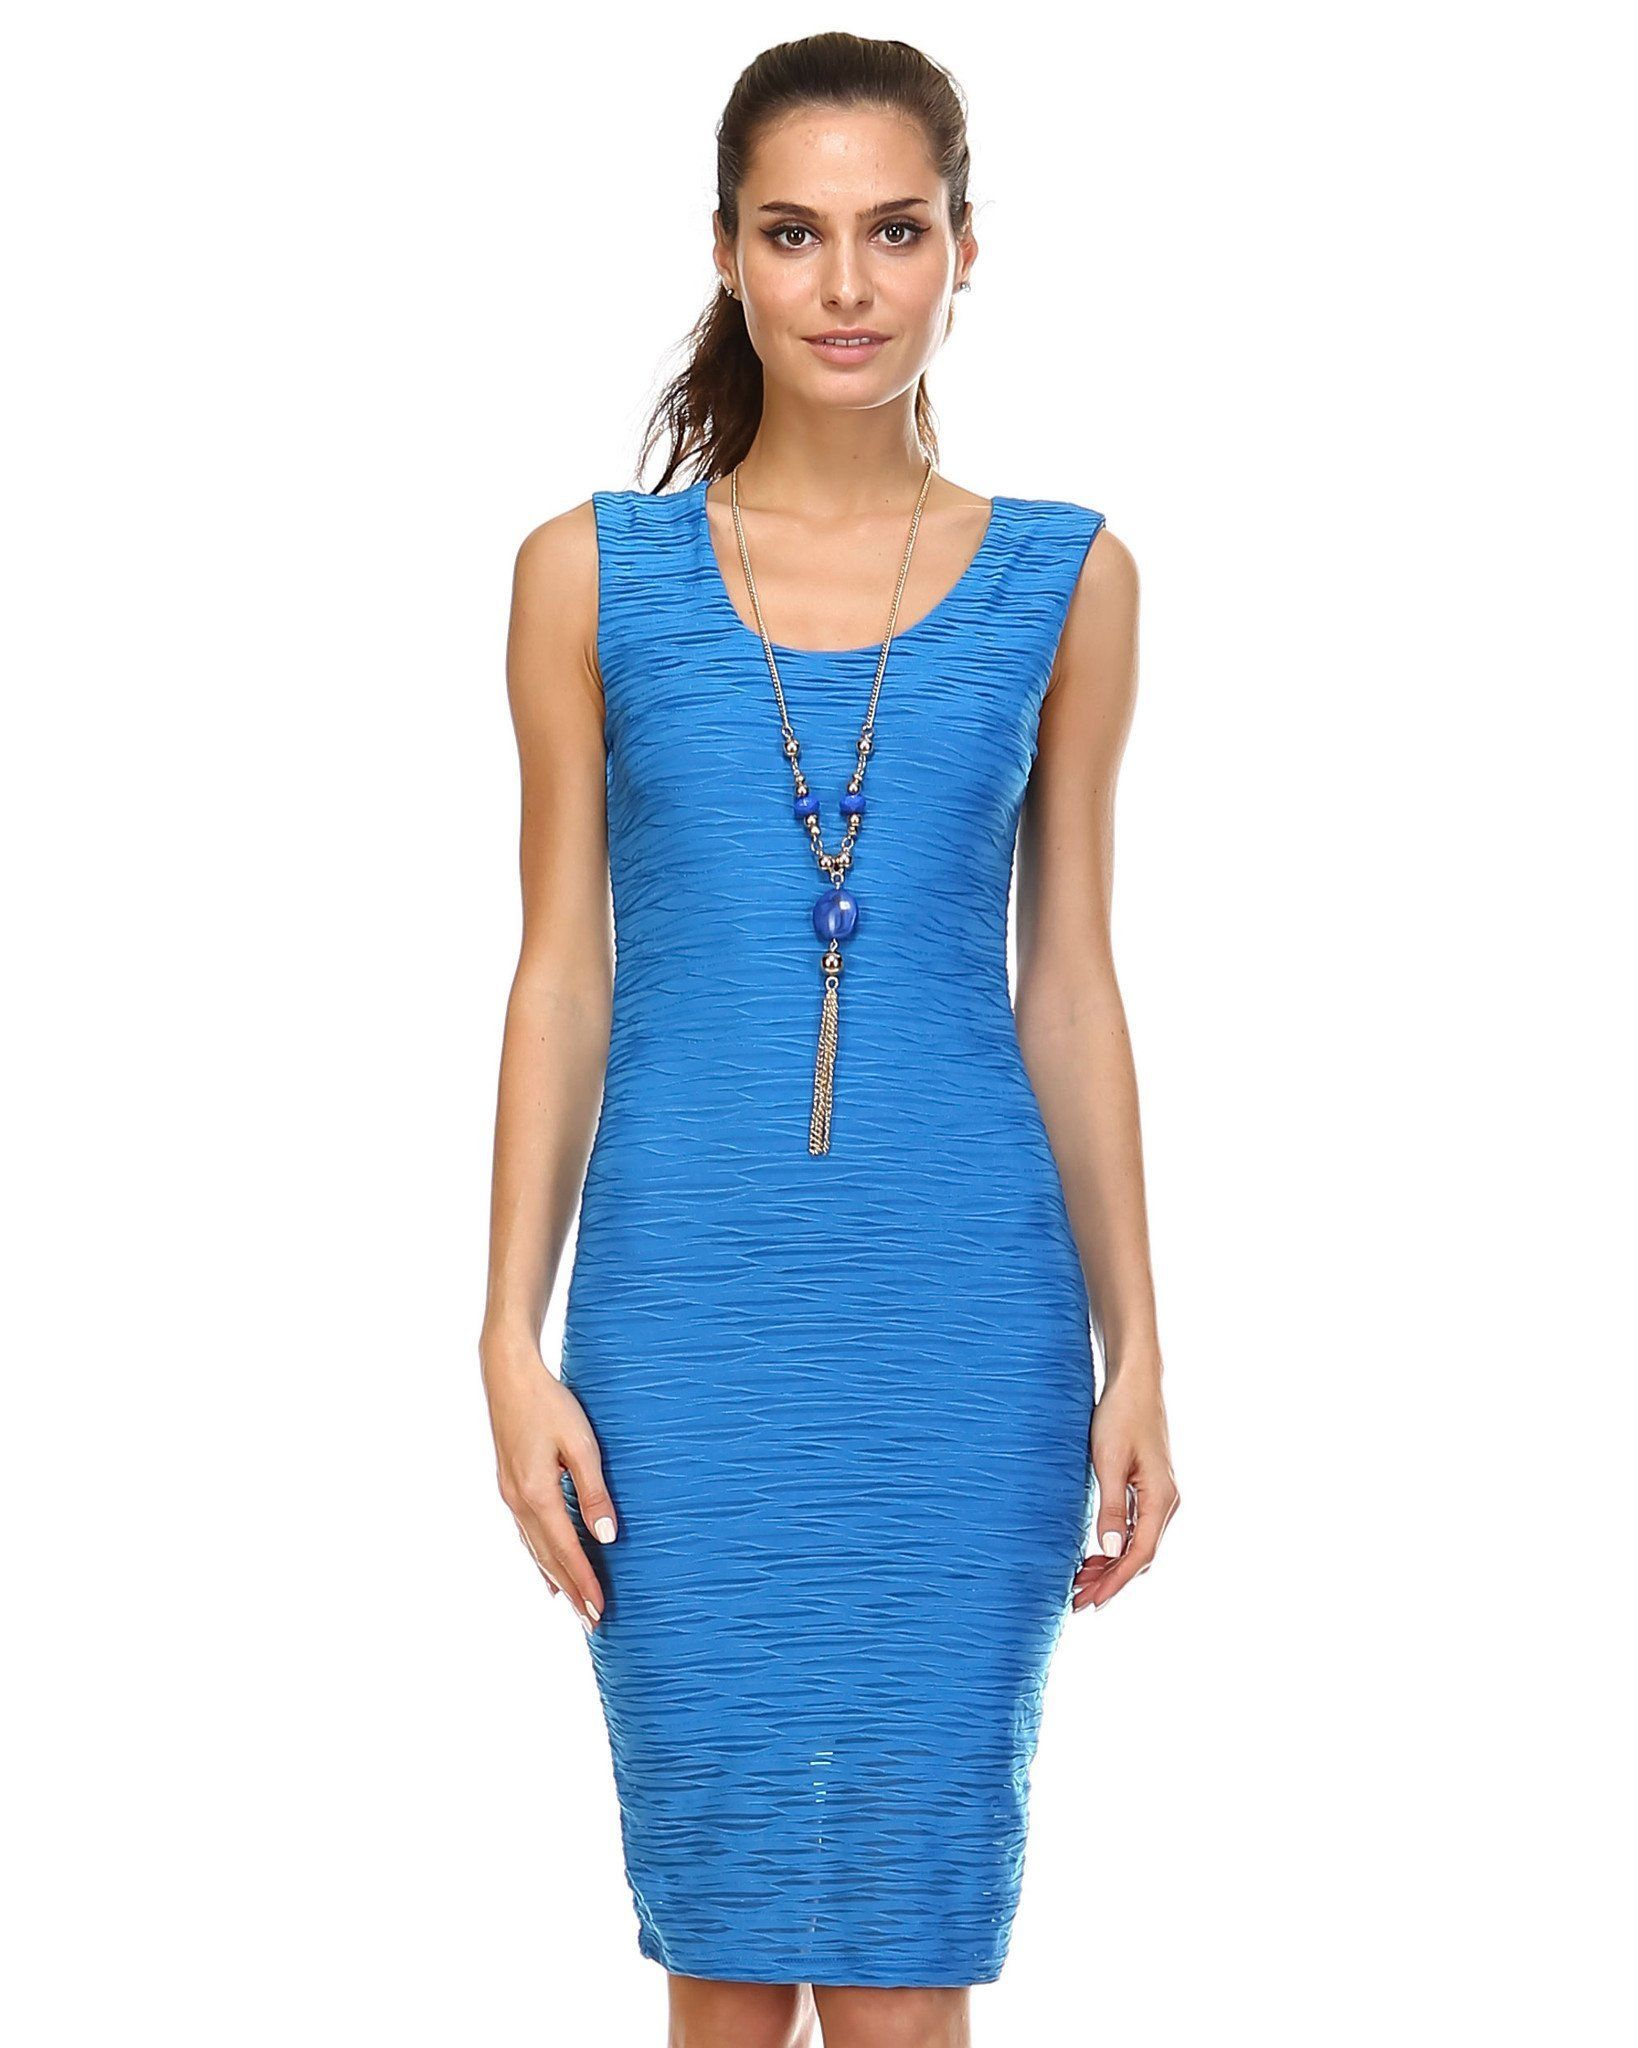 Textured Knit Form Fitting Sleeveless Dress Clothes Dresses Her